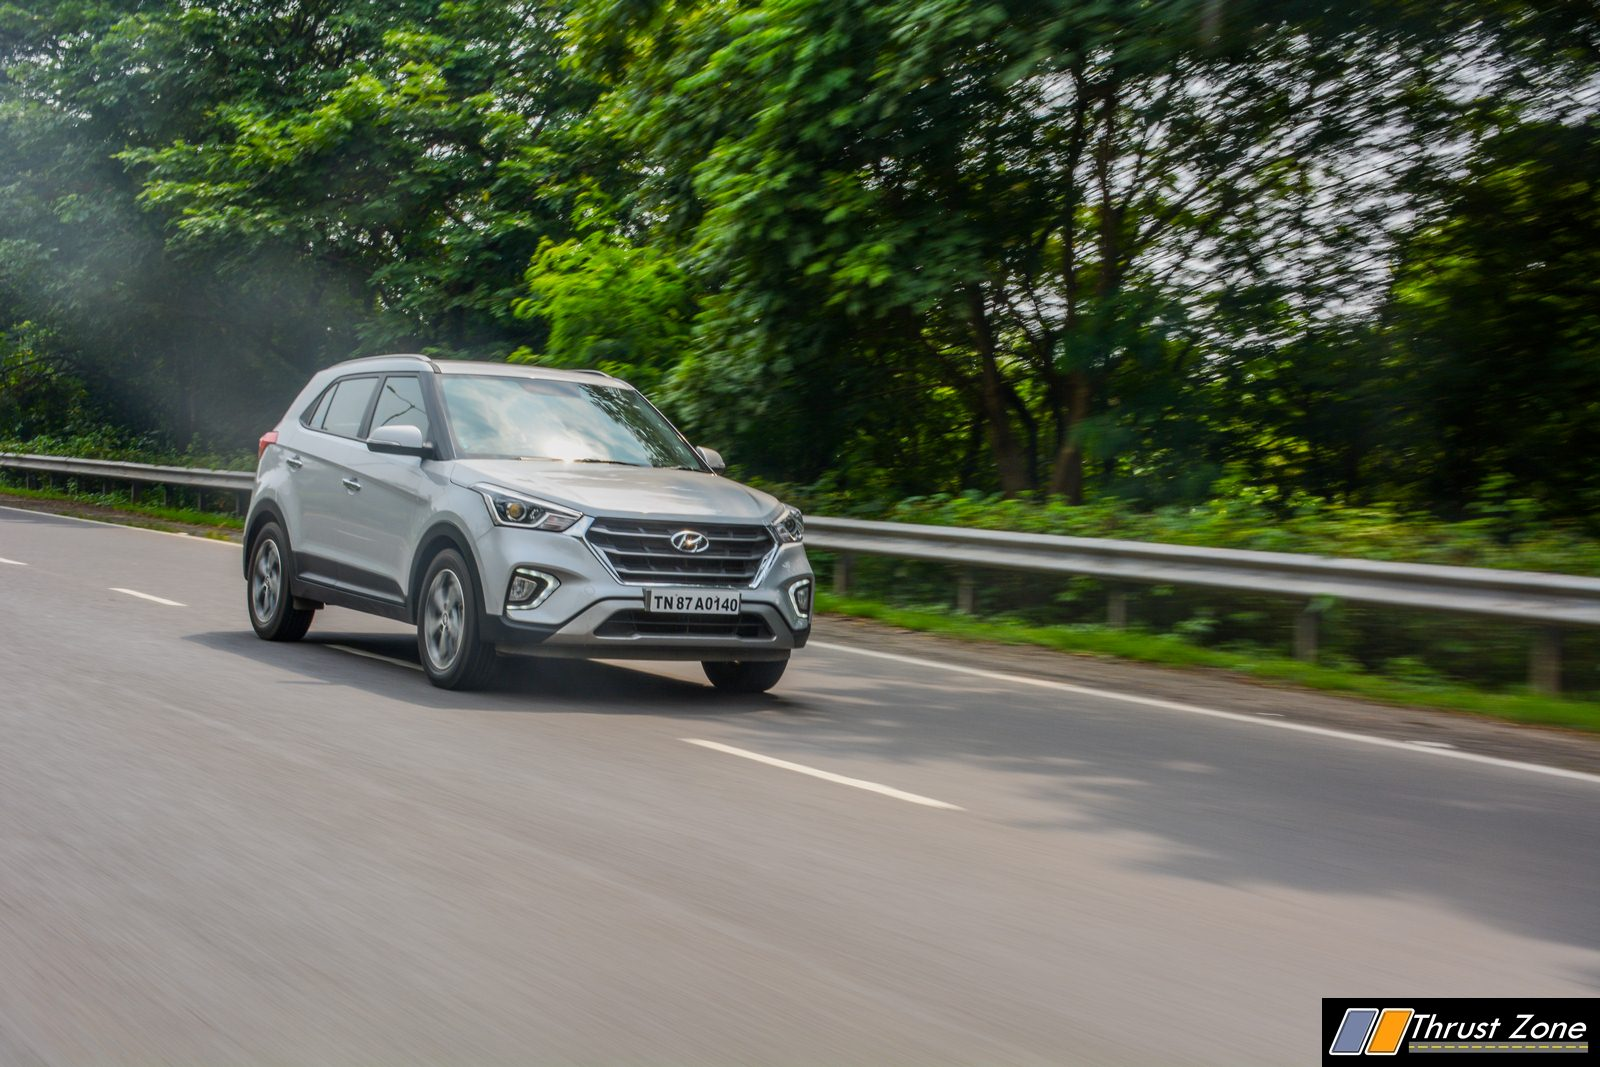 https://www.thrustzone.com/wp-content/uploads/2019/05/2019-hyundai-creta-facelift-diesel-review-2.jpg